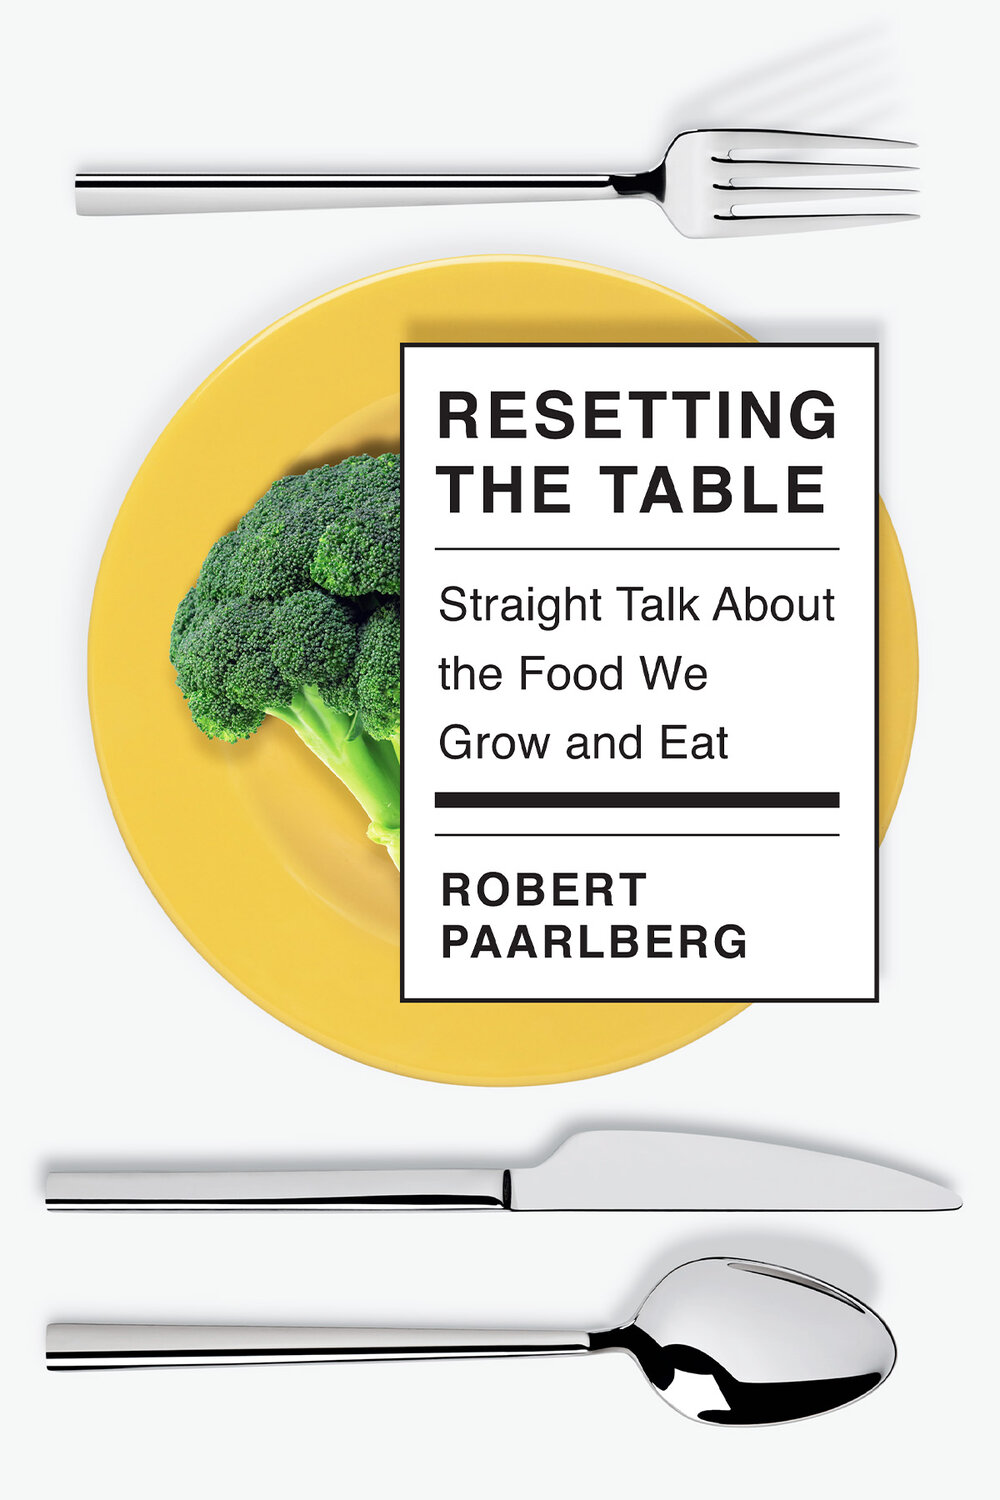 Resetting the Table: Straight Talk About the Food We Grow and Eat by Robert Paarlberg